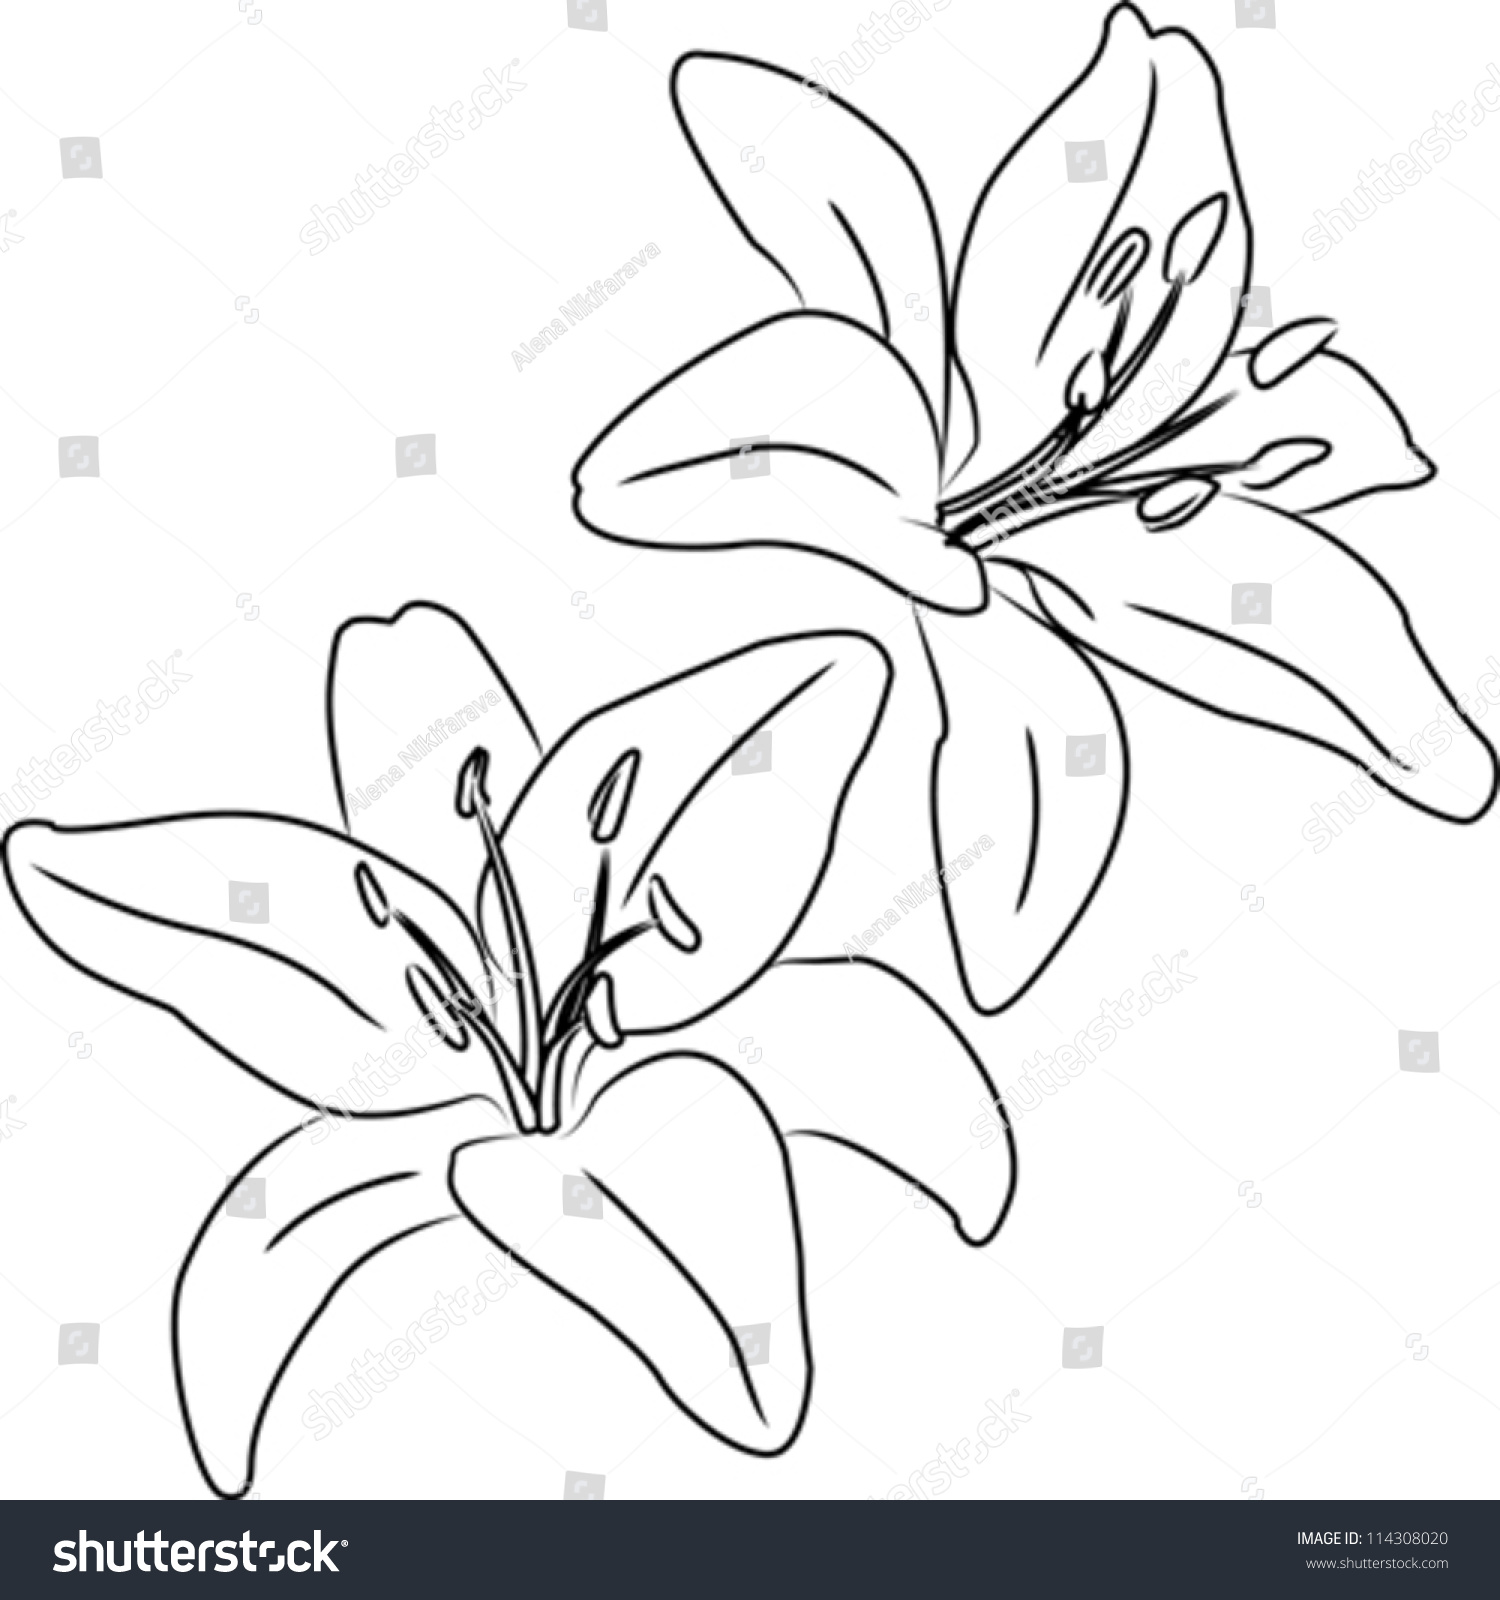 Line Drawing Flower Vector : Eletragesi easy flower drawing outline images